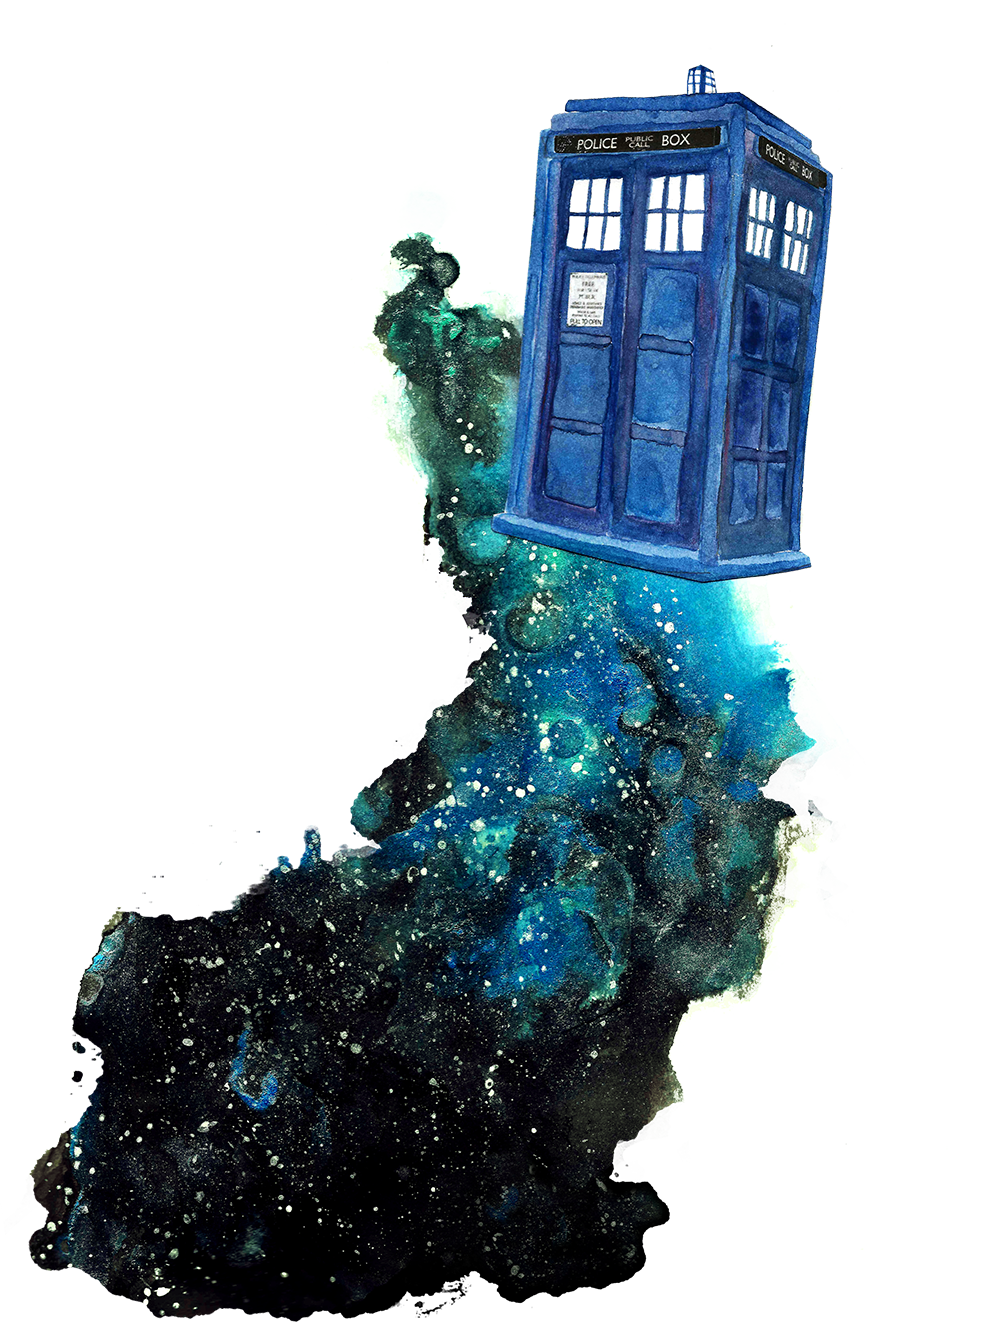 Doctor who png tumblr. Official celestielcastiel all of